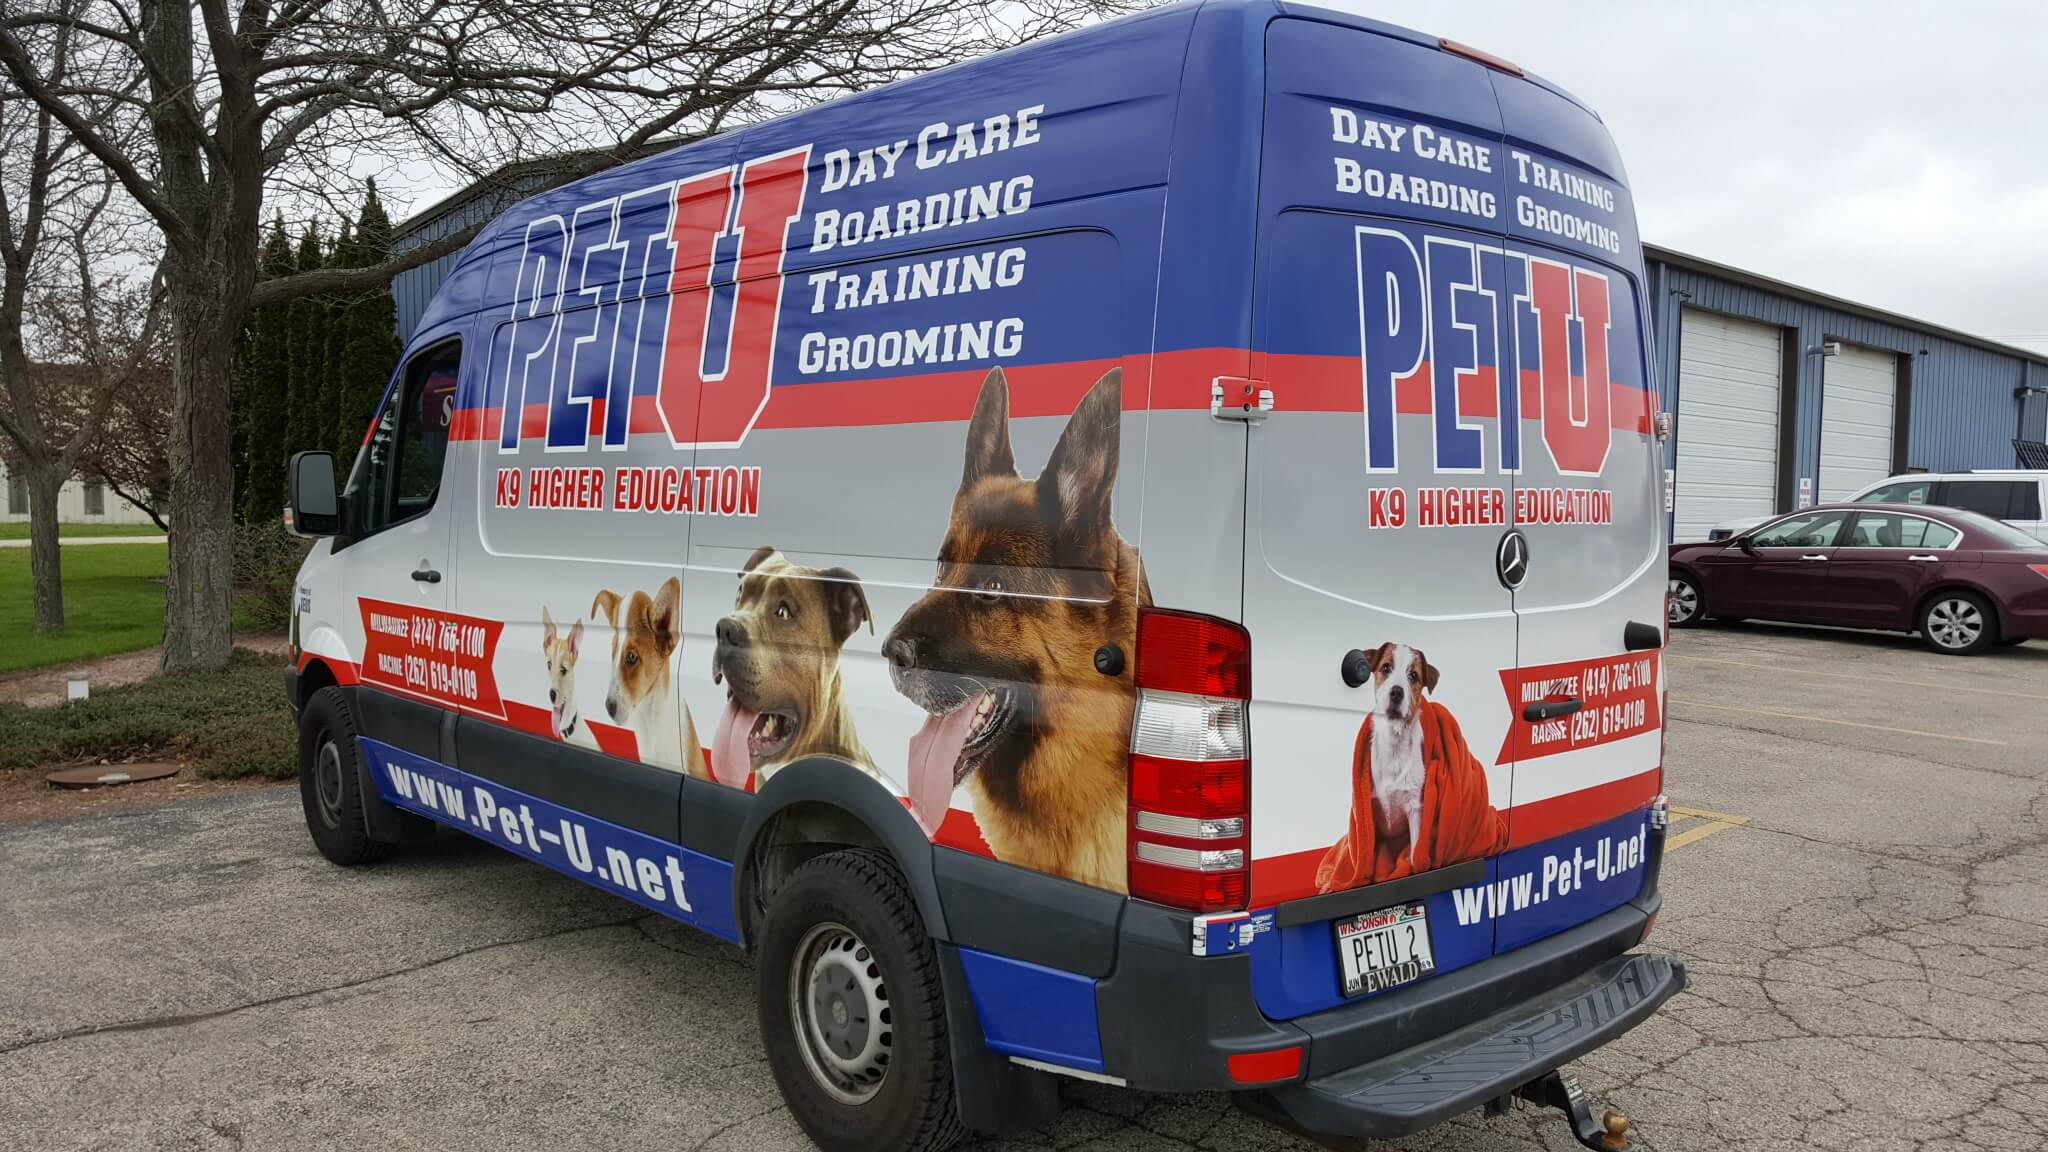 PET U Delivery vehicle wrap with decals